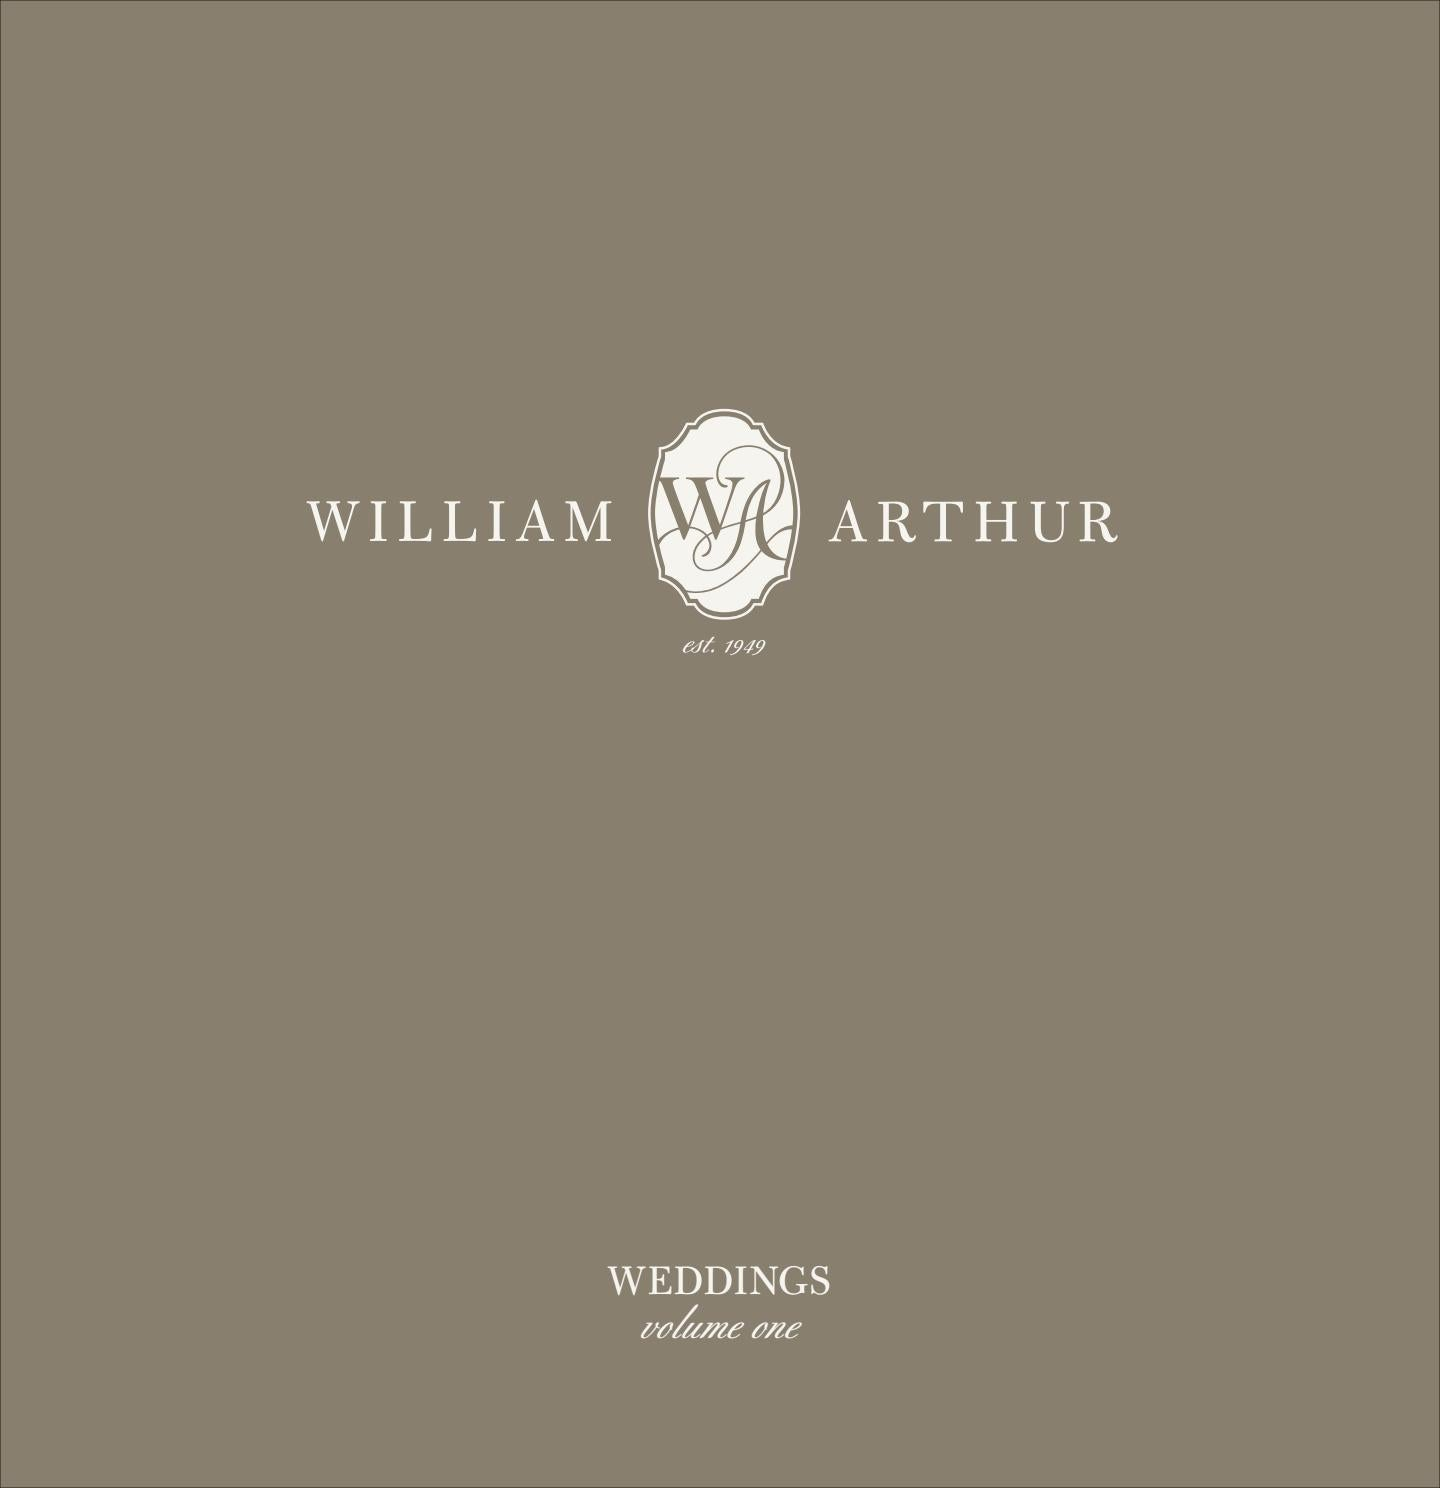 William Arthur Weddings 1 by CaxtonLondon